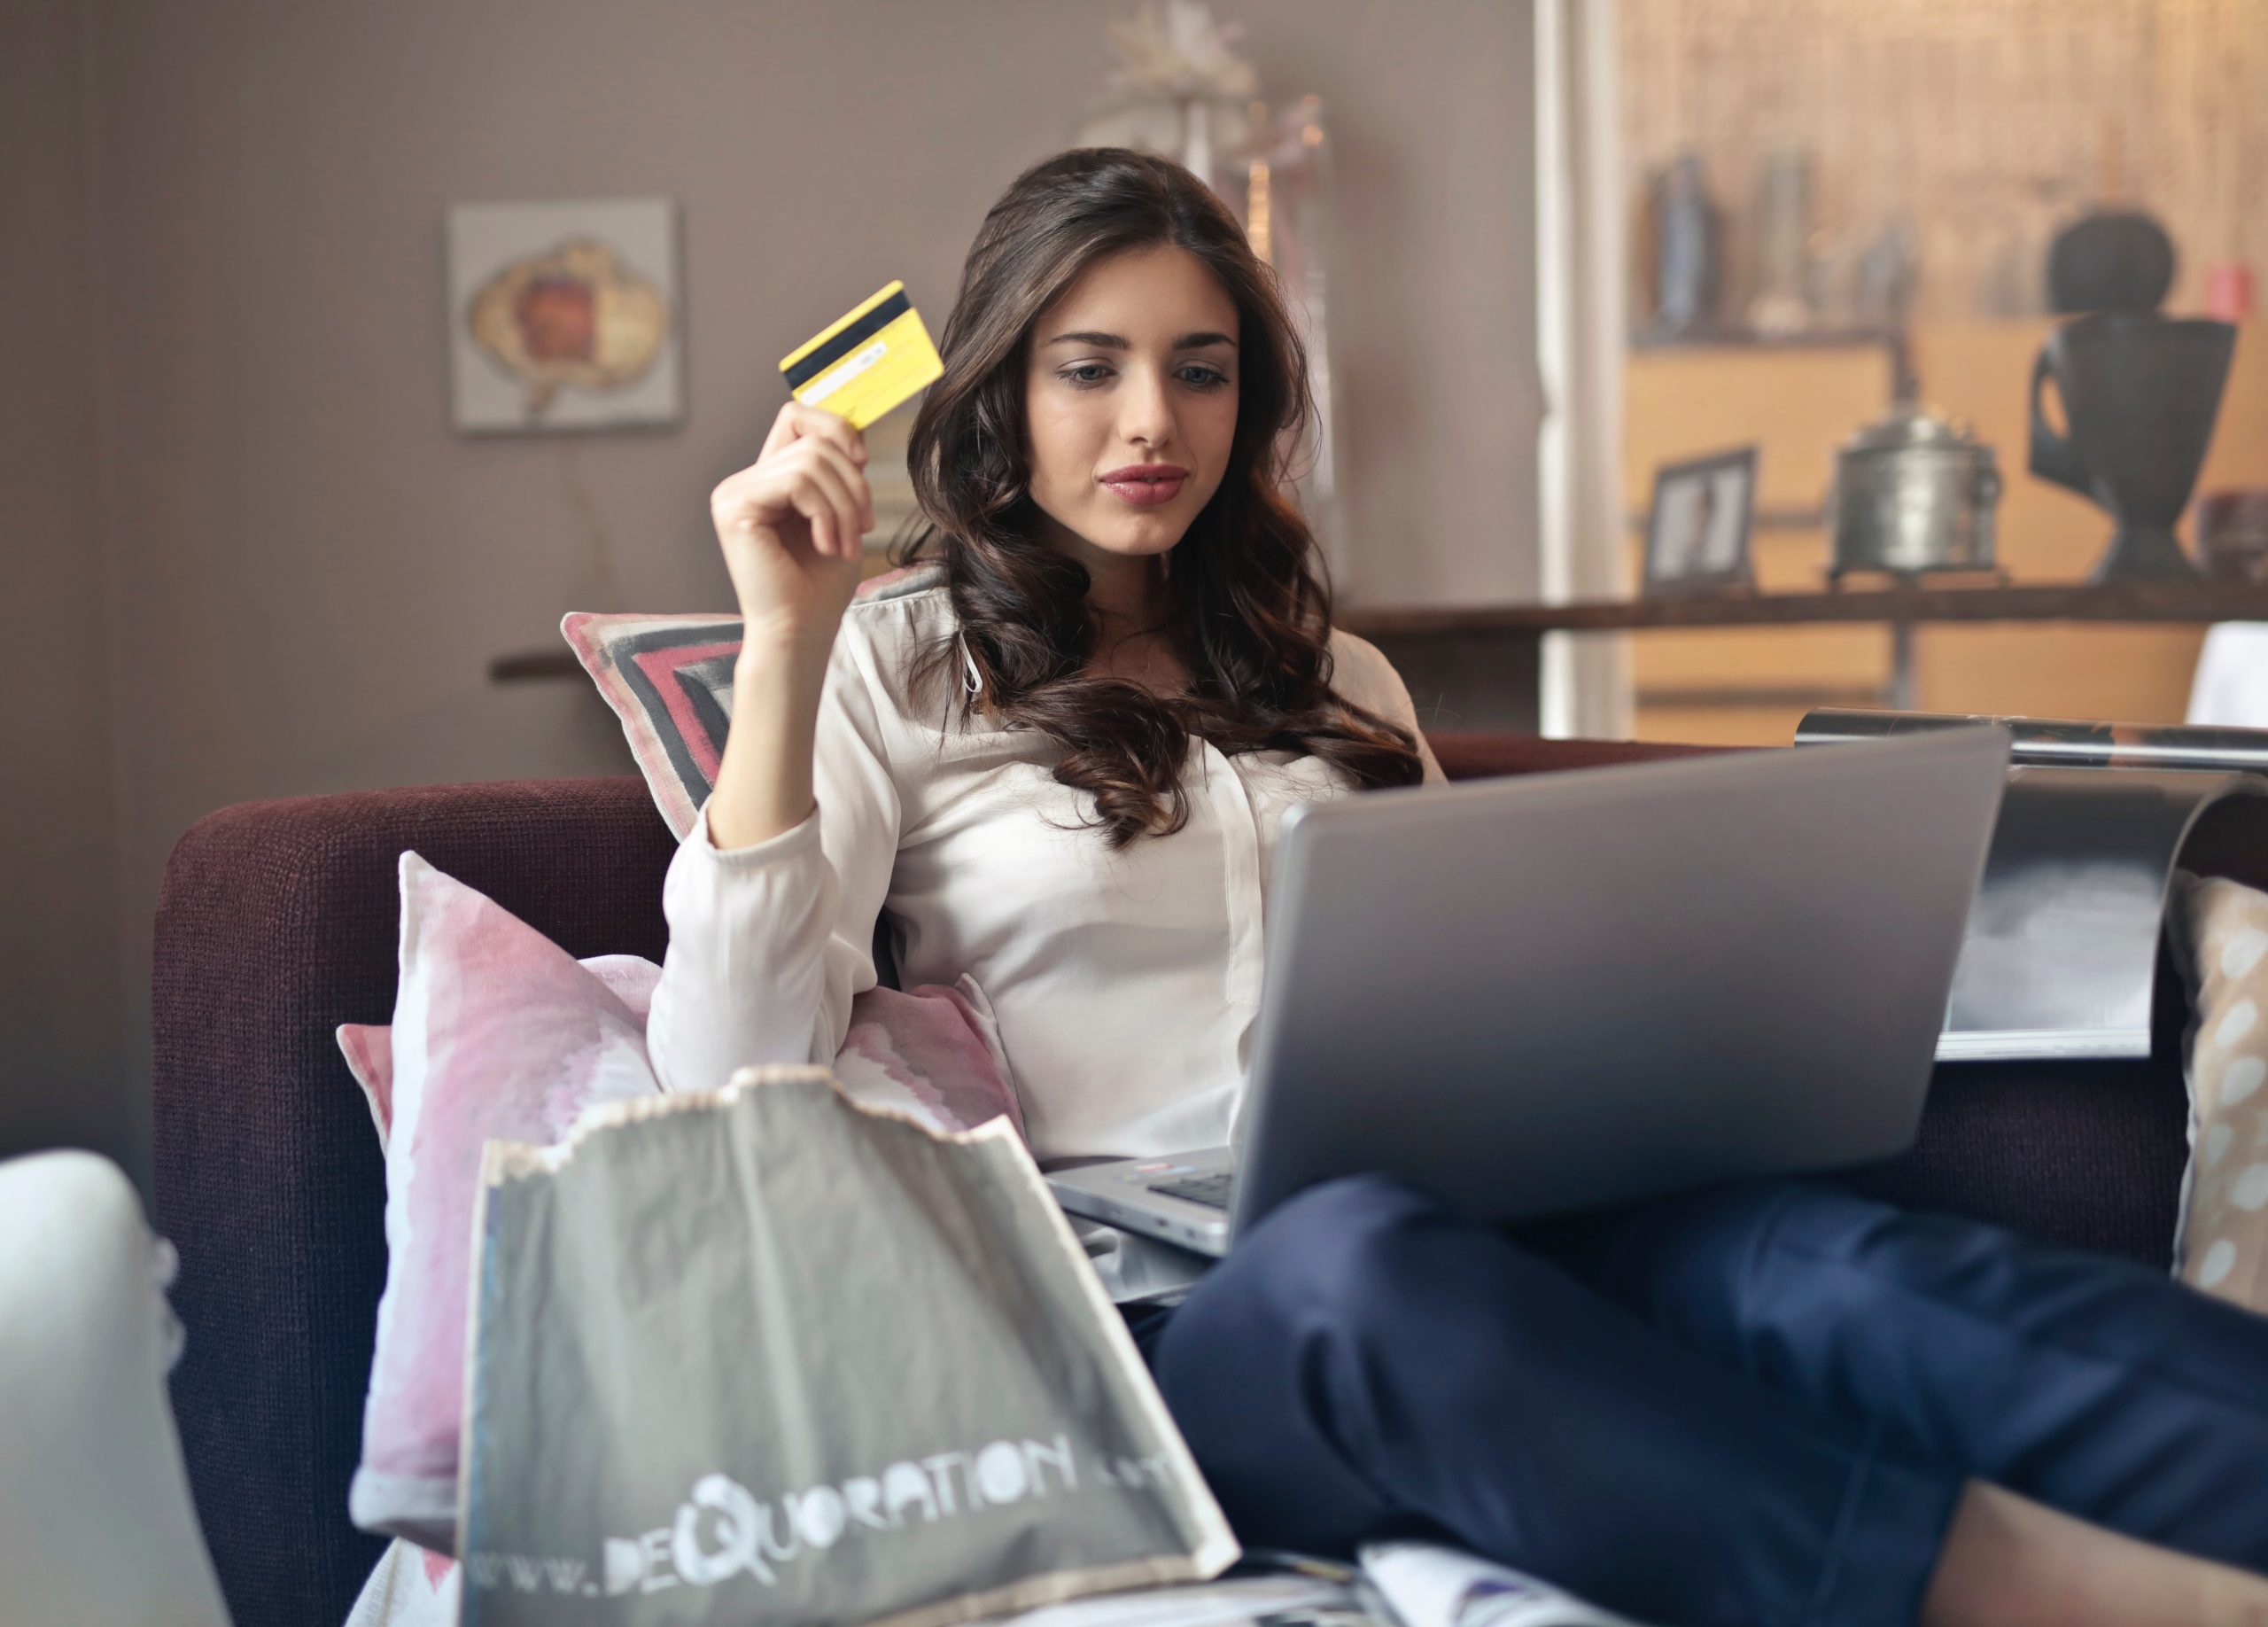 Credit Score: What's Yours? Tips on How to Raise It Minerva Roca Contributor Miami Moms Blog